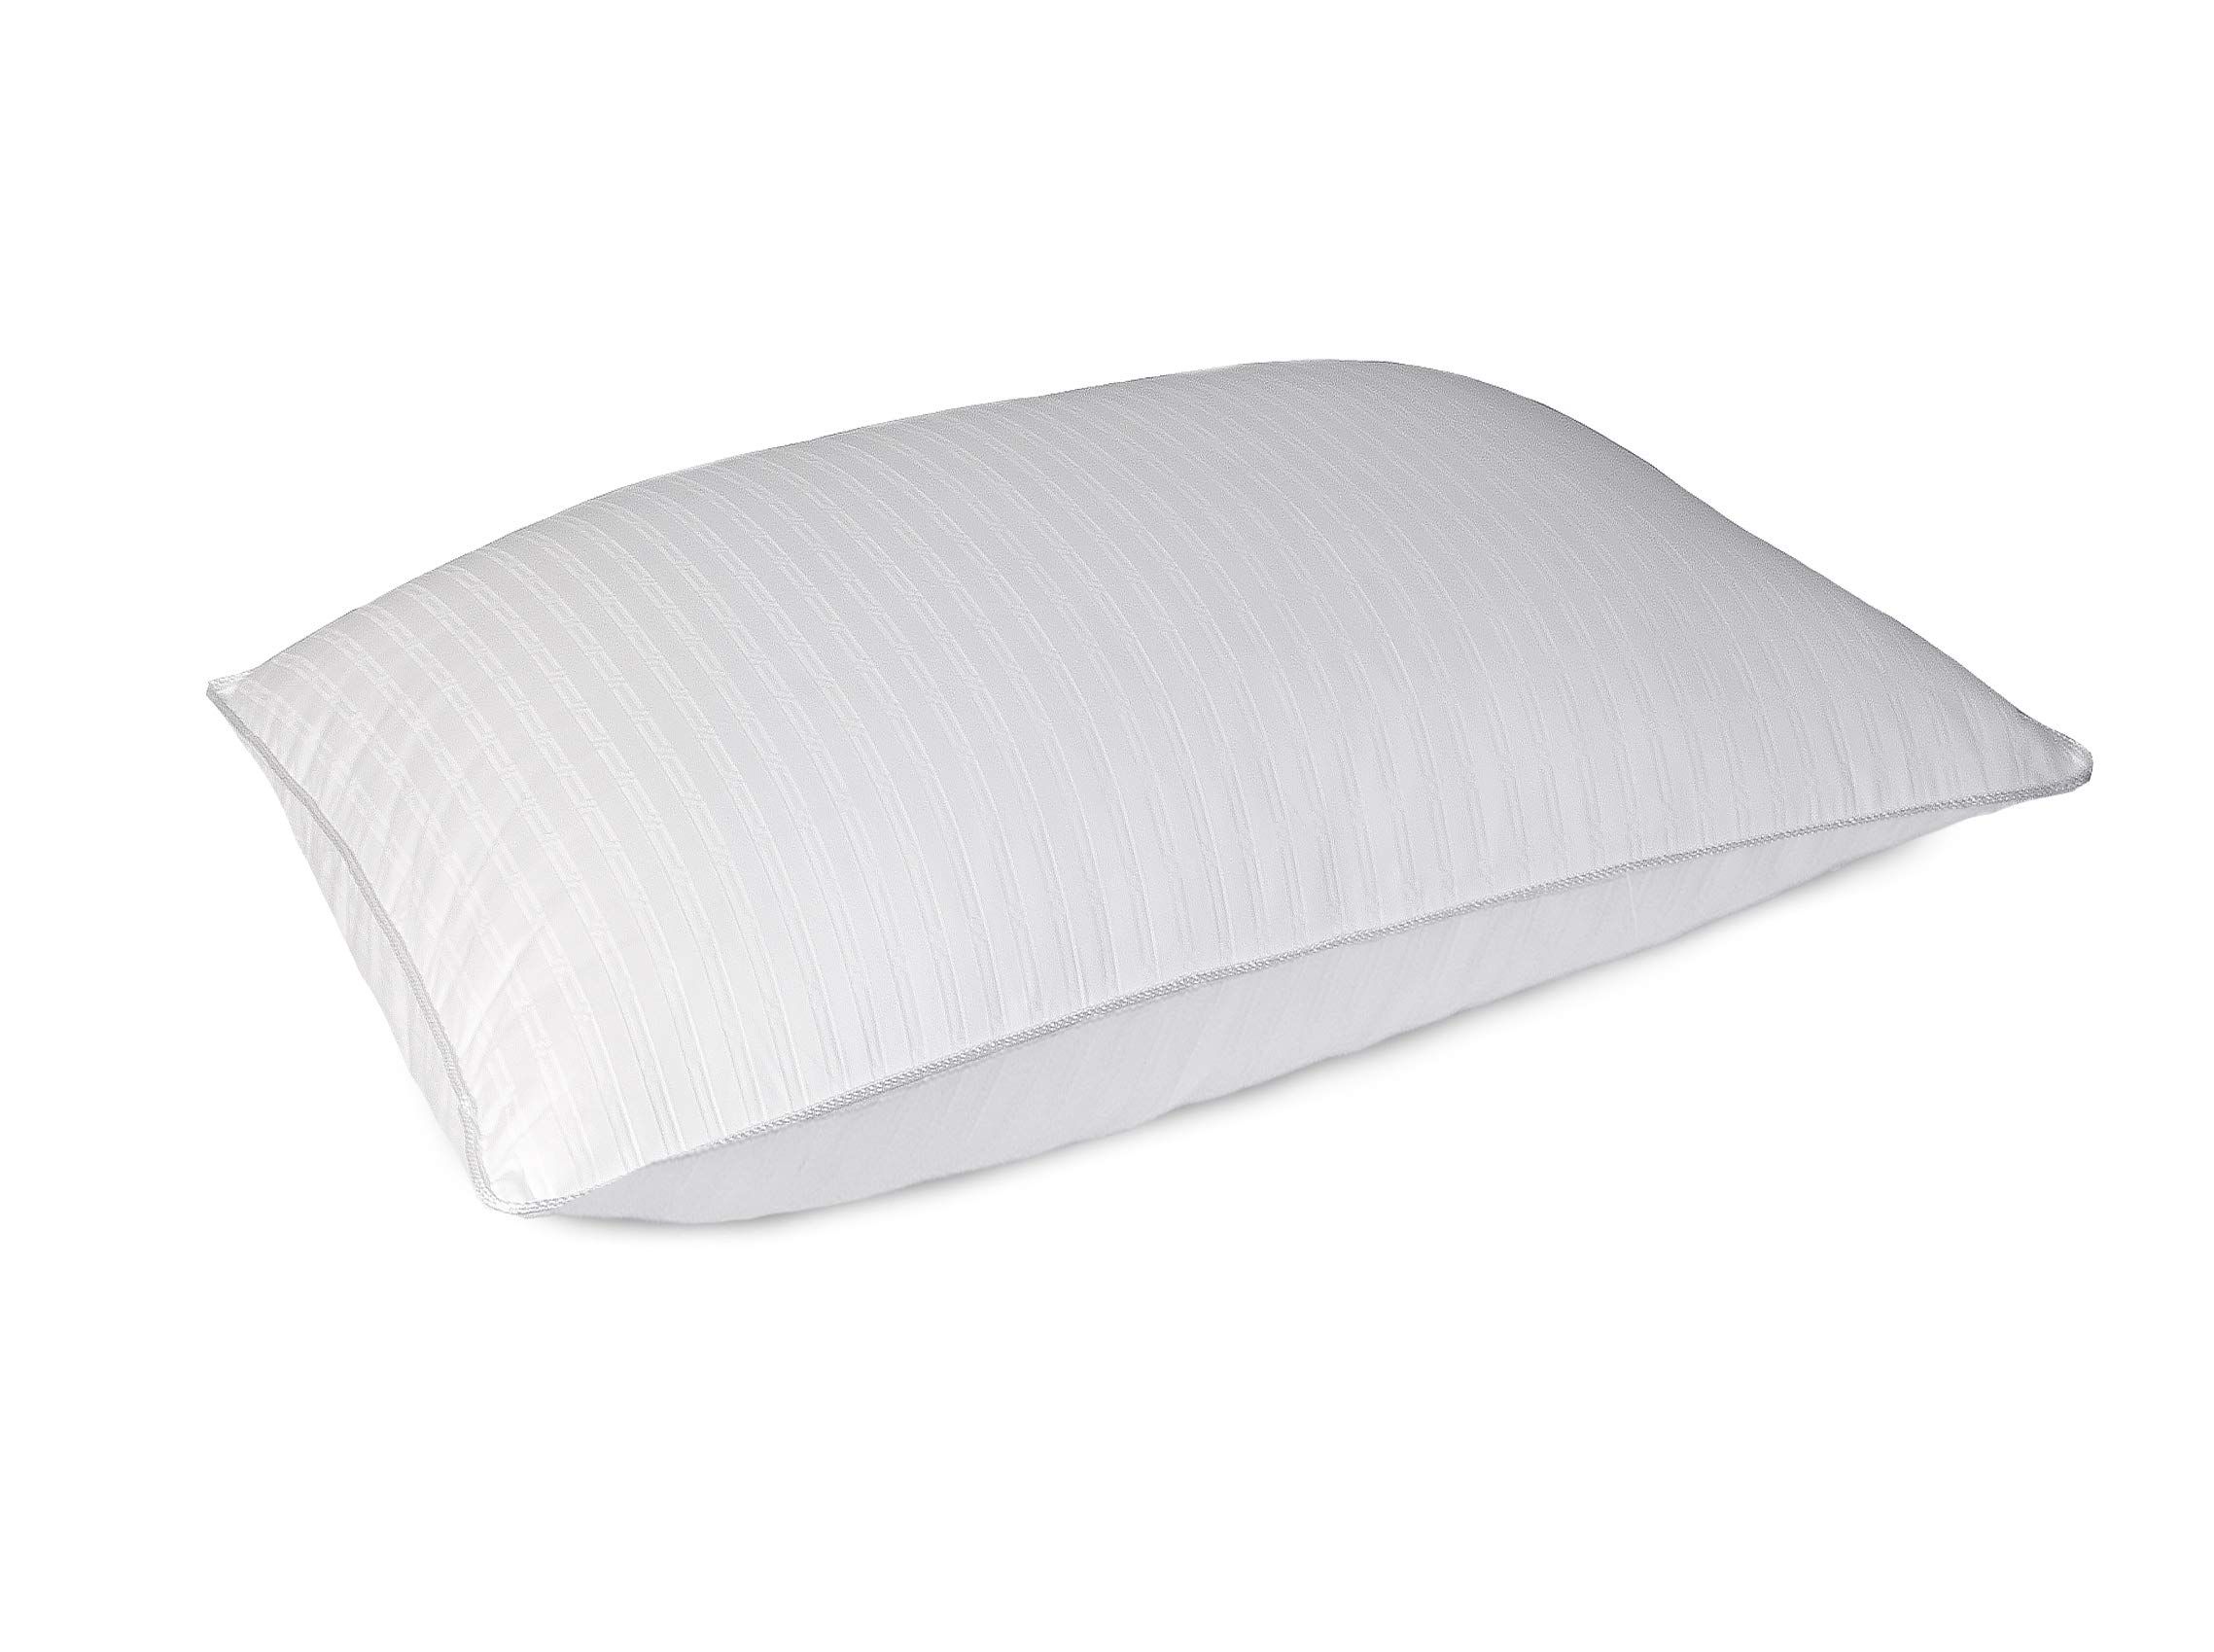 Blue Ridge Home Fashions 500 Thread Count Dot Pattern Hybrid Blend (Natural Down and Feather) Double Cover Pillow - Single Pack, Standard, White